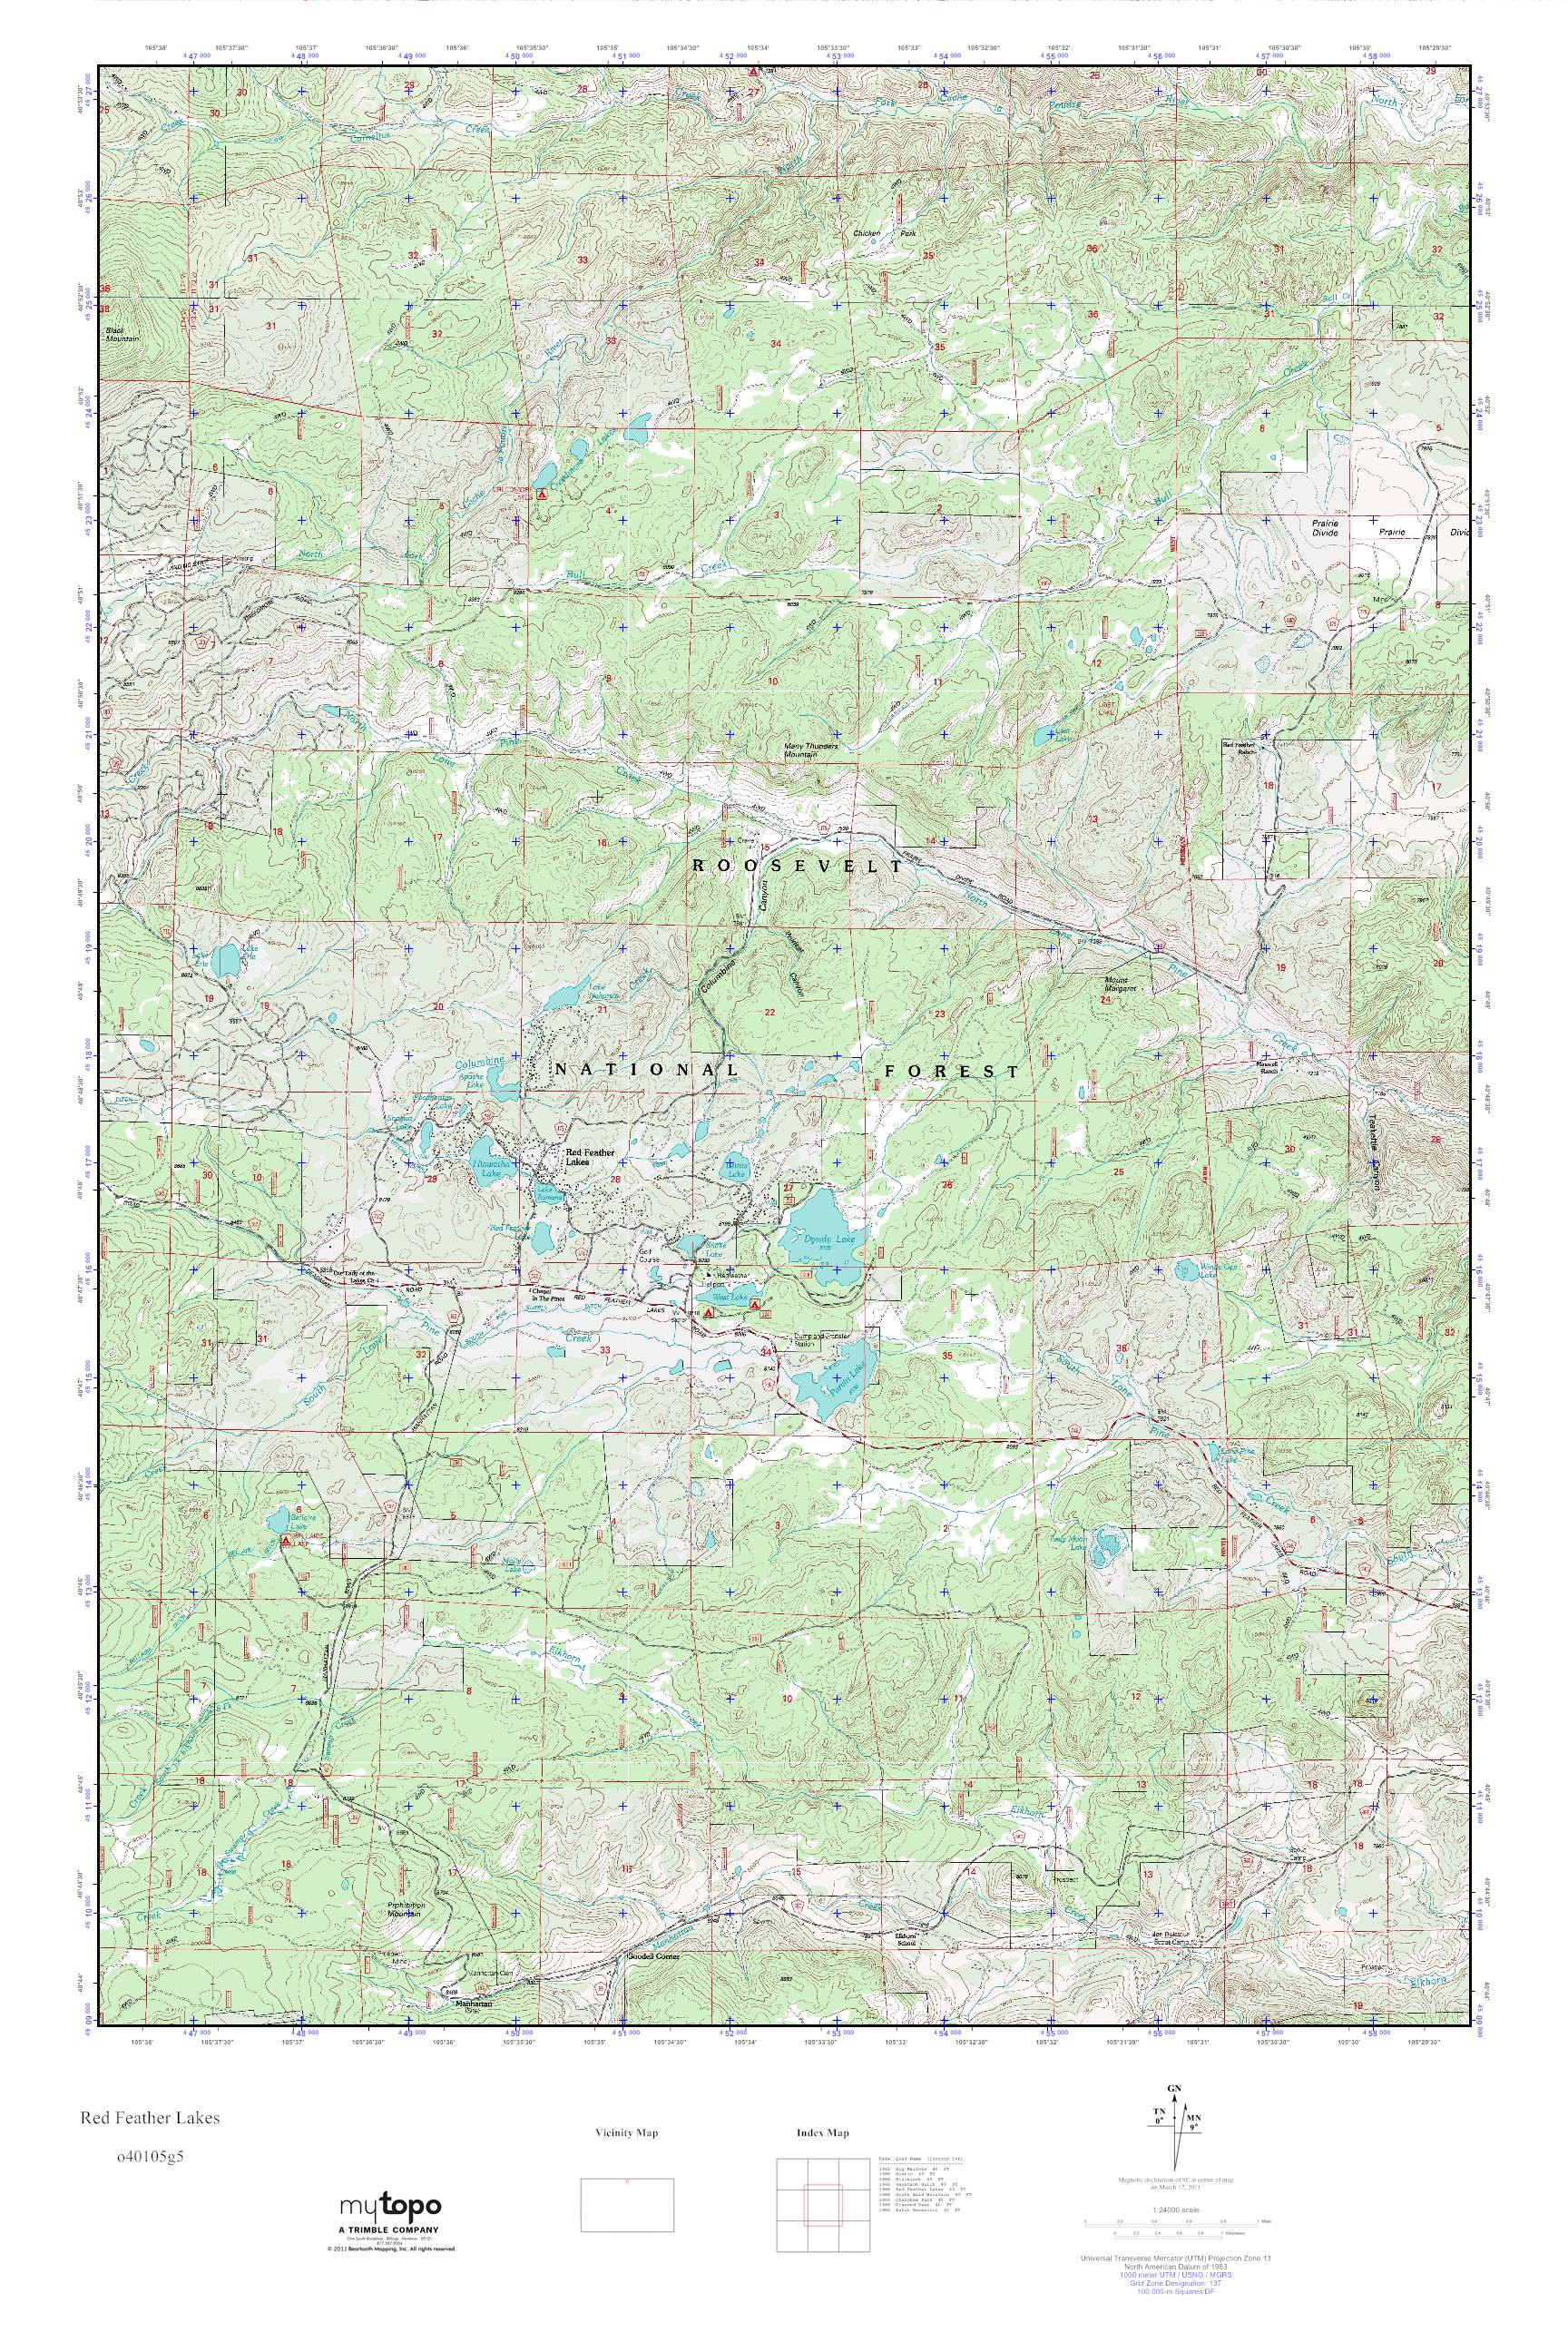 red feather lakes map Mytopo Red Feather Lakes Colorado Usgs Quad Topo Map red feather lakes map